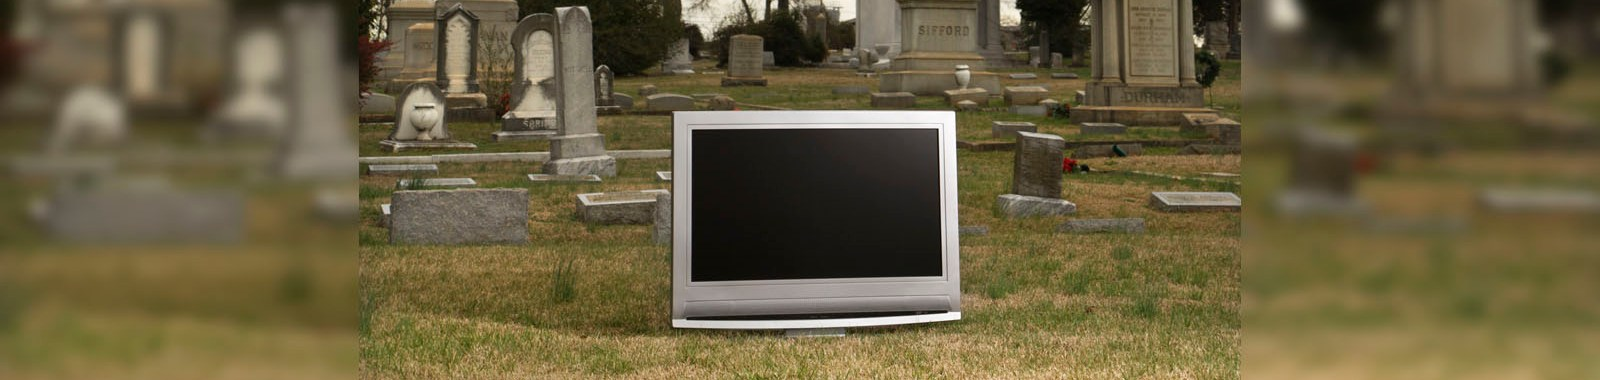 Flat panel television set in cemetary.